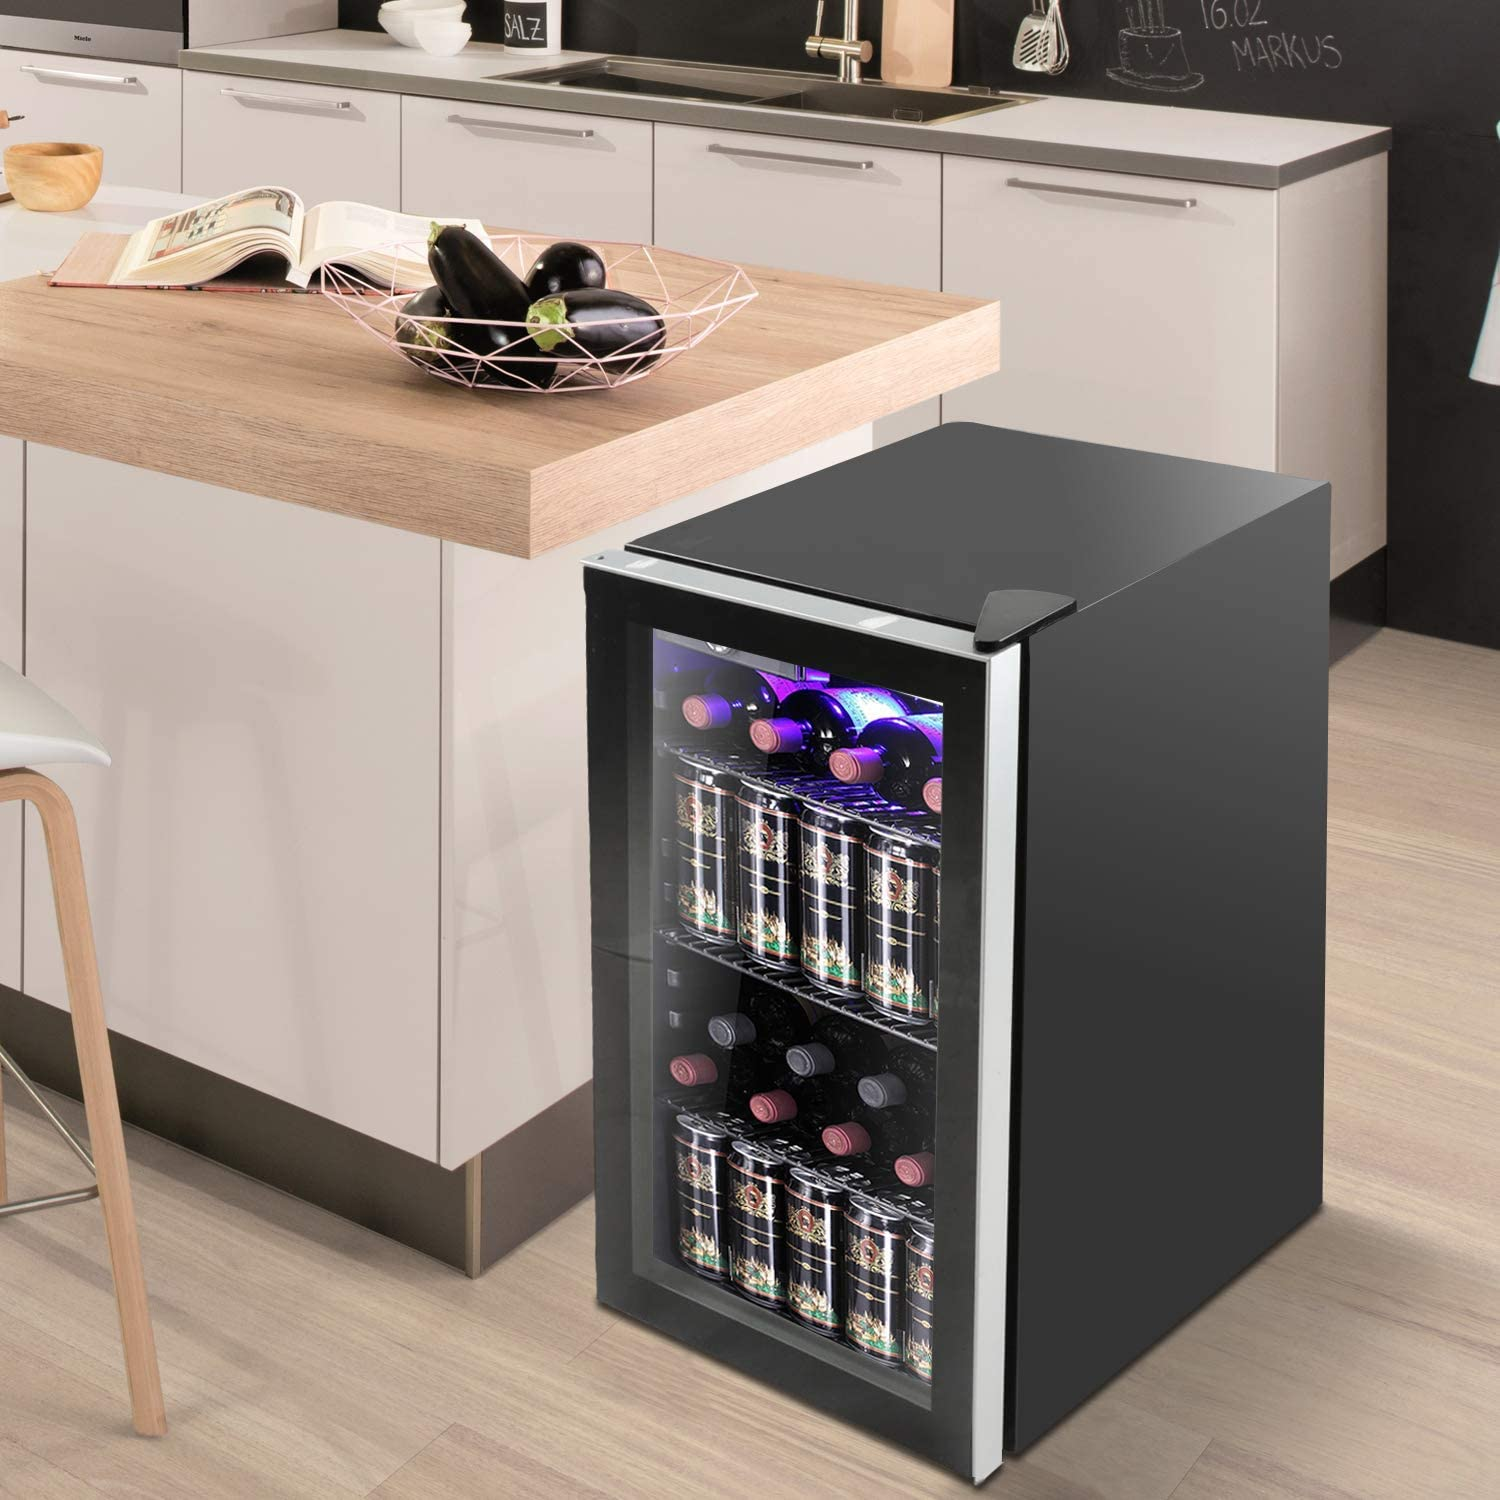 Bossin 26 Bottle Wine Cooler Counter Top Wine Cellar Bar FridgeQuiet Operation Compressor Wine Cellar Freestanding Counter Top Wine Chiller- Cabinet Refrigerator